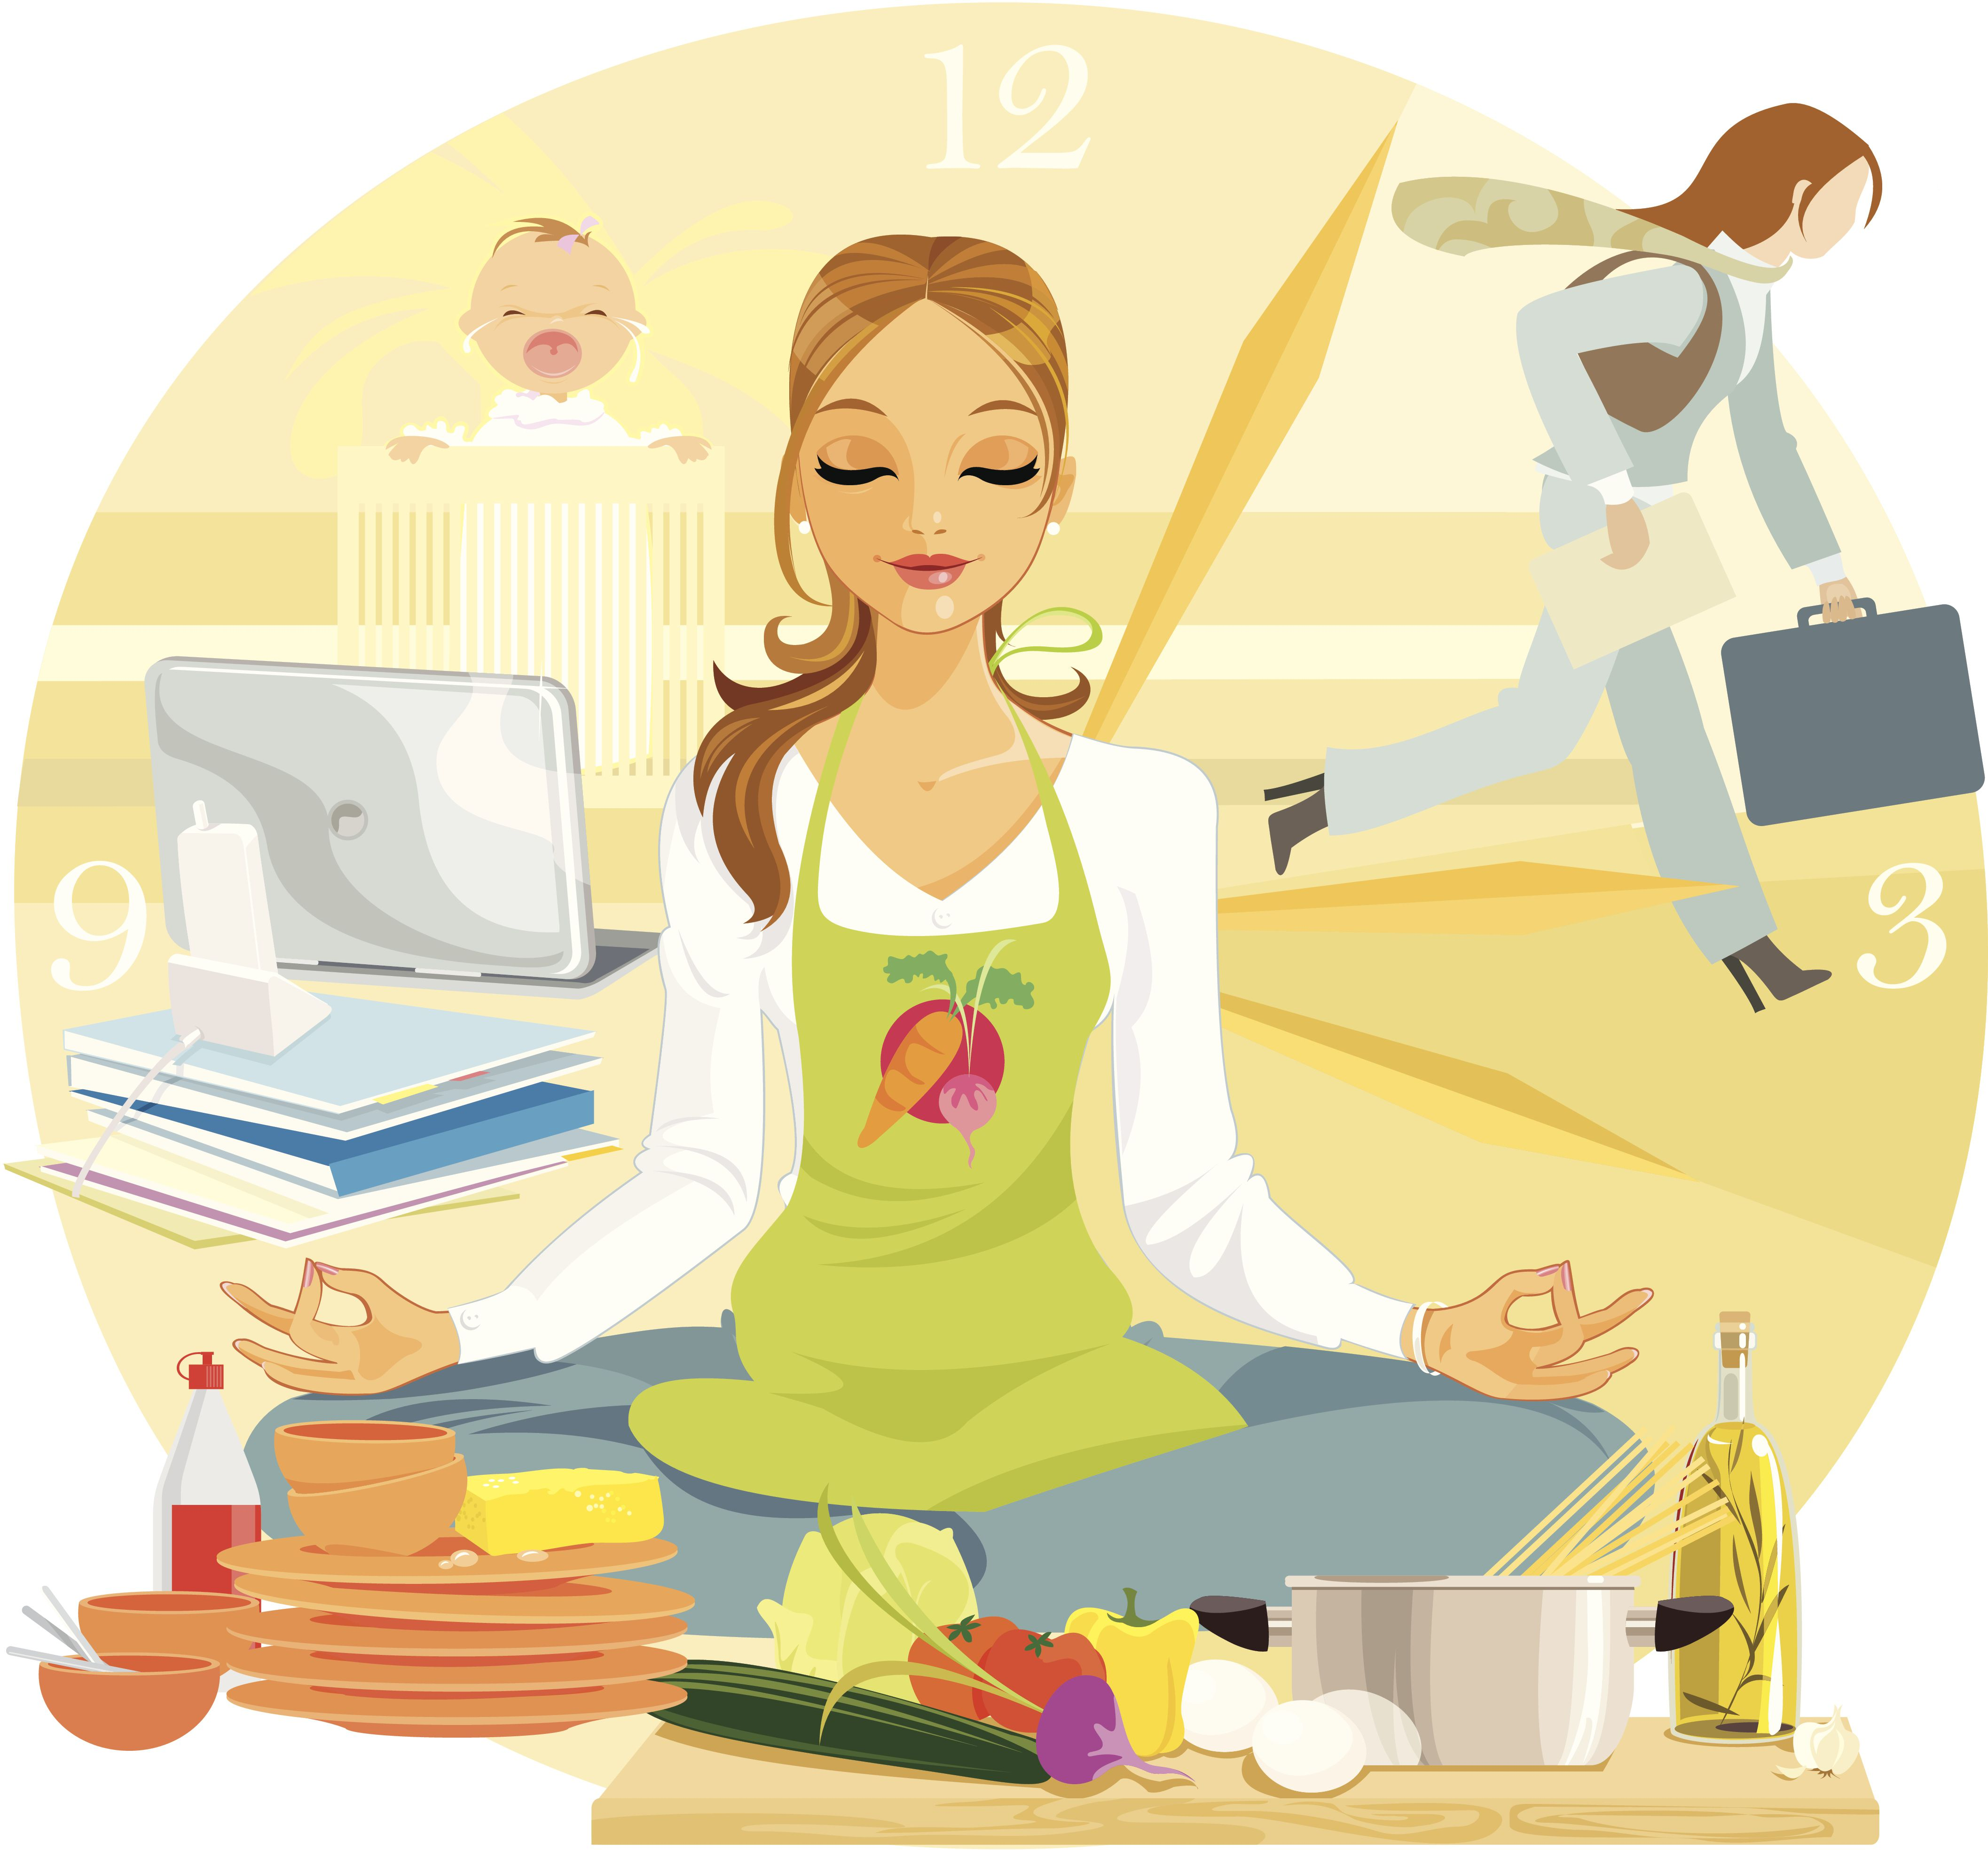 Inspirational Quotes About Work-Life Balance